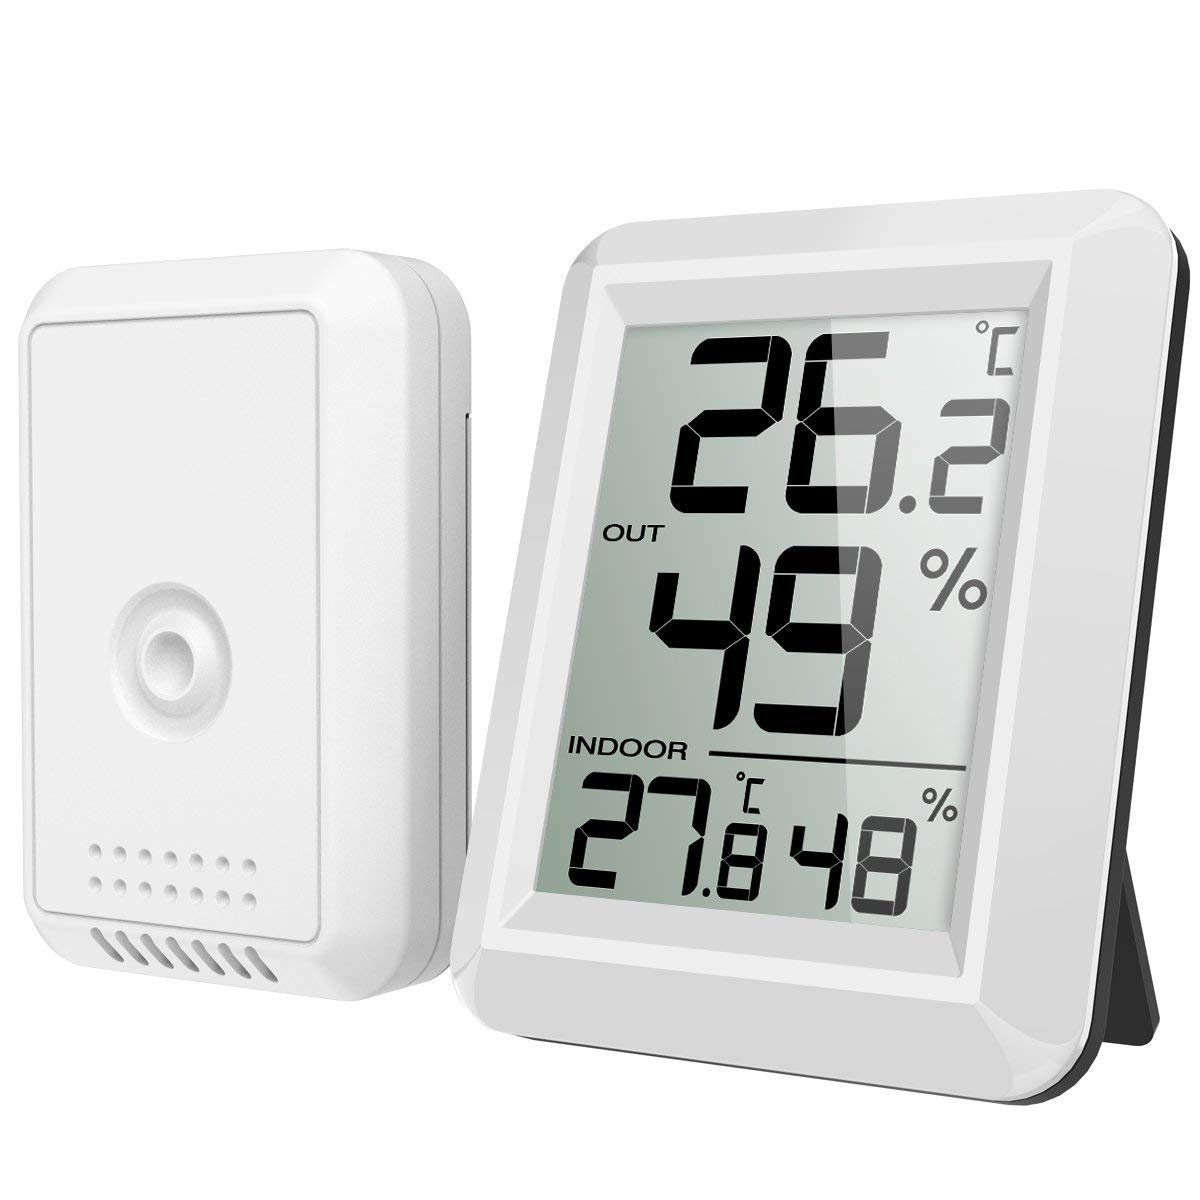 V.JUST Digital Hygrometer Thermometer, Indoor Outdoor Monitor Temperature Humidity, Wireless Mini Hygrometer Gauge Switch